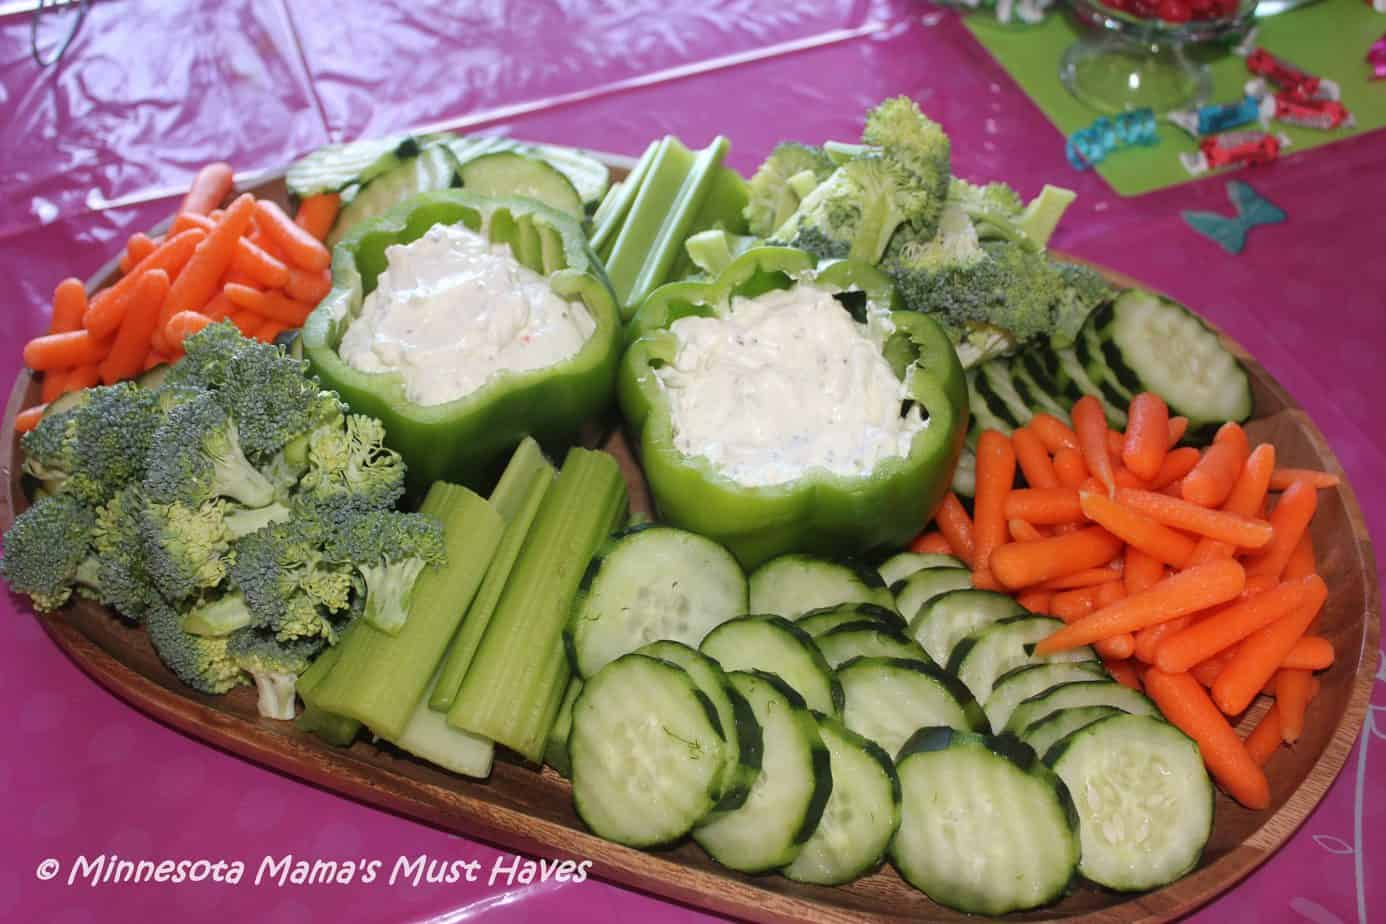 Easy veggie tray idea with bell pepper dip bowl! Love this easy entertaining idea.